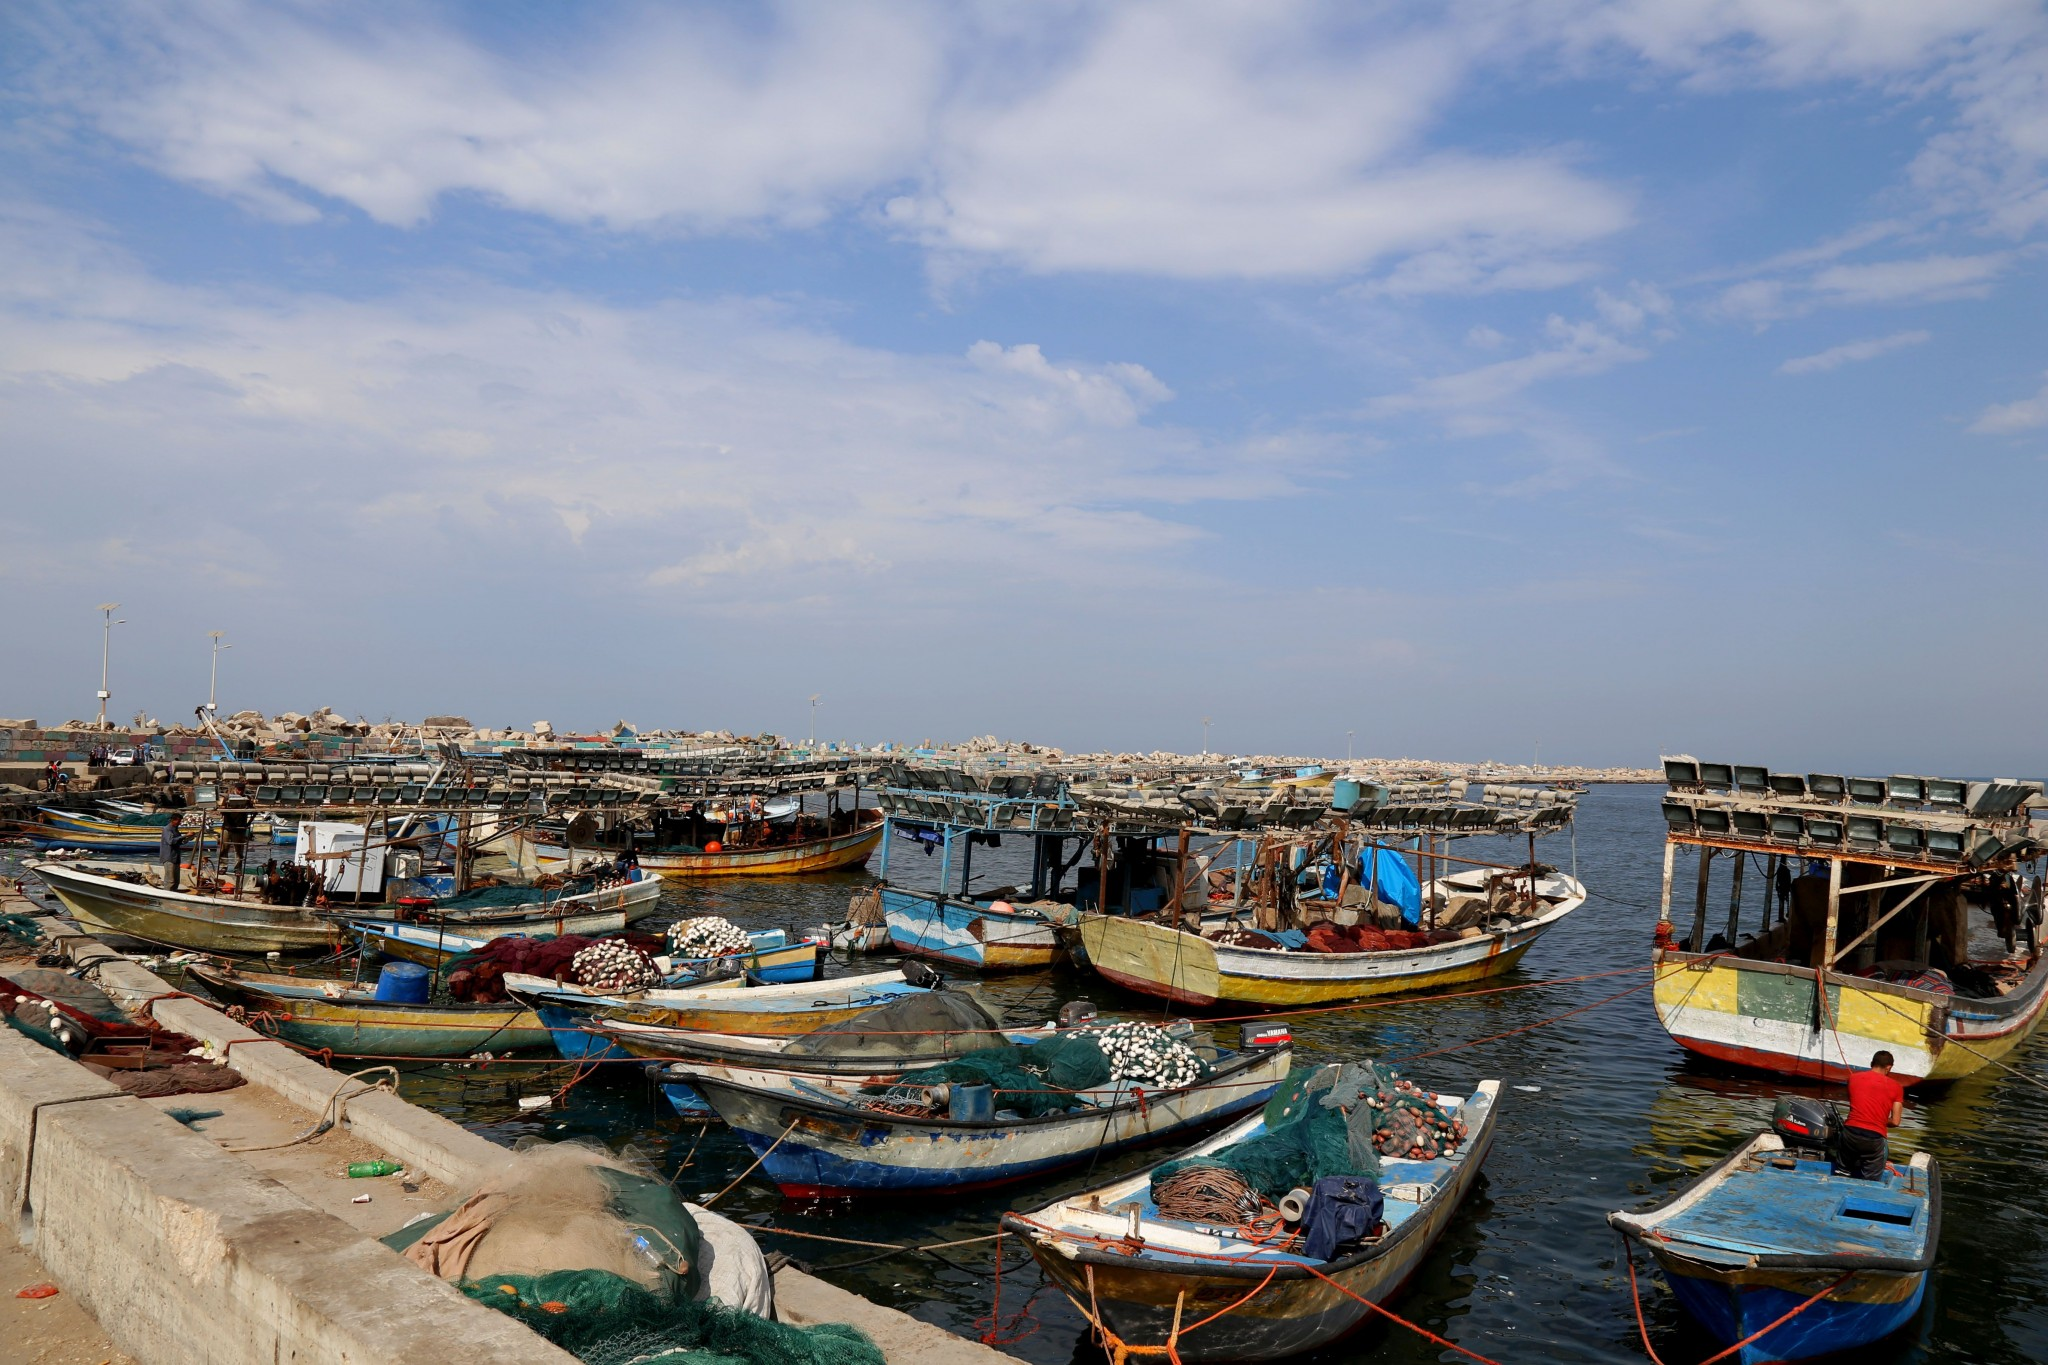 Gaza port. Photo by Gisha